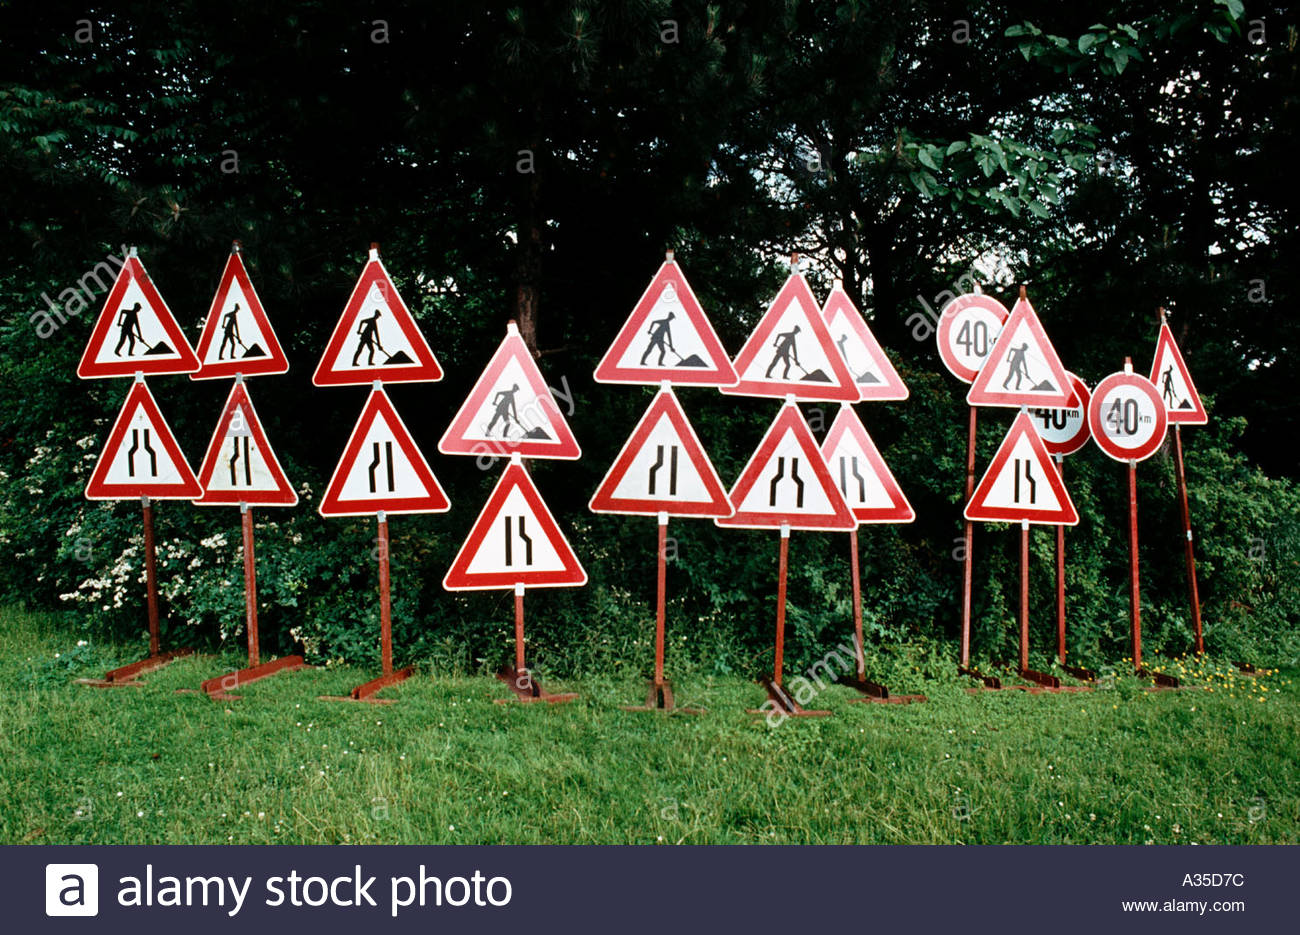 traffic signs communication road construction worker car traffic jam regulation caution slow down delay economy germany europe